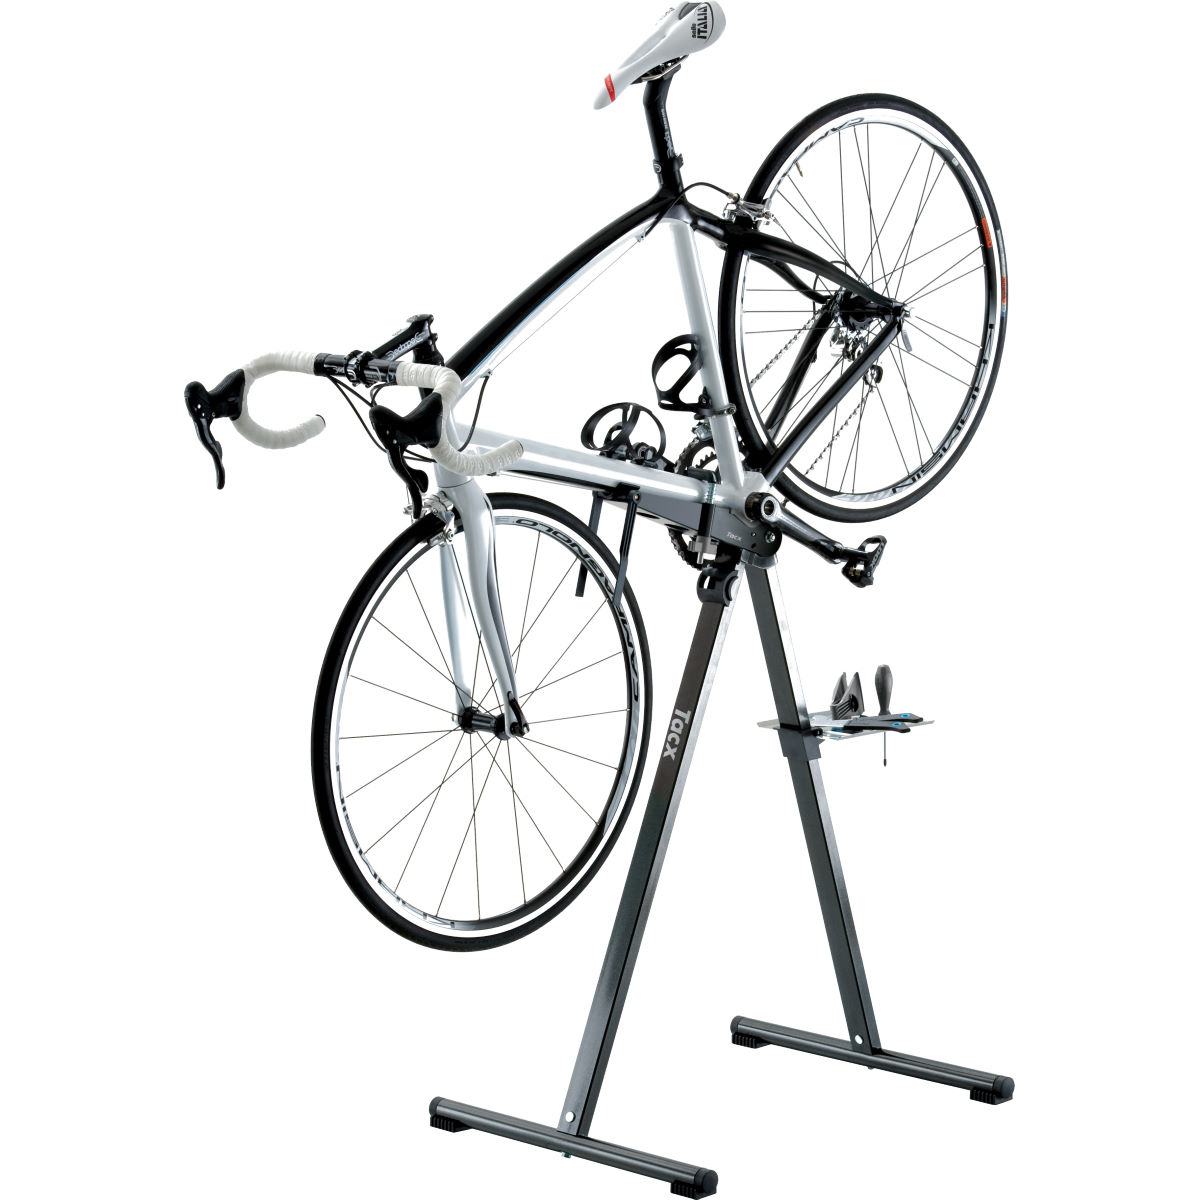 Tacx Tacx T3000 Folding Cycle Stand   Workstands